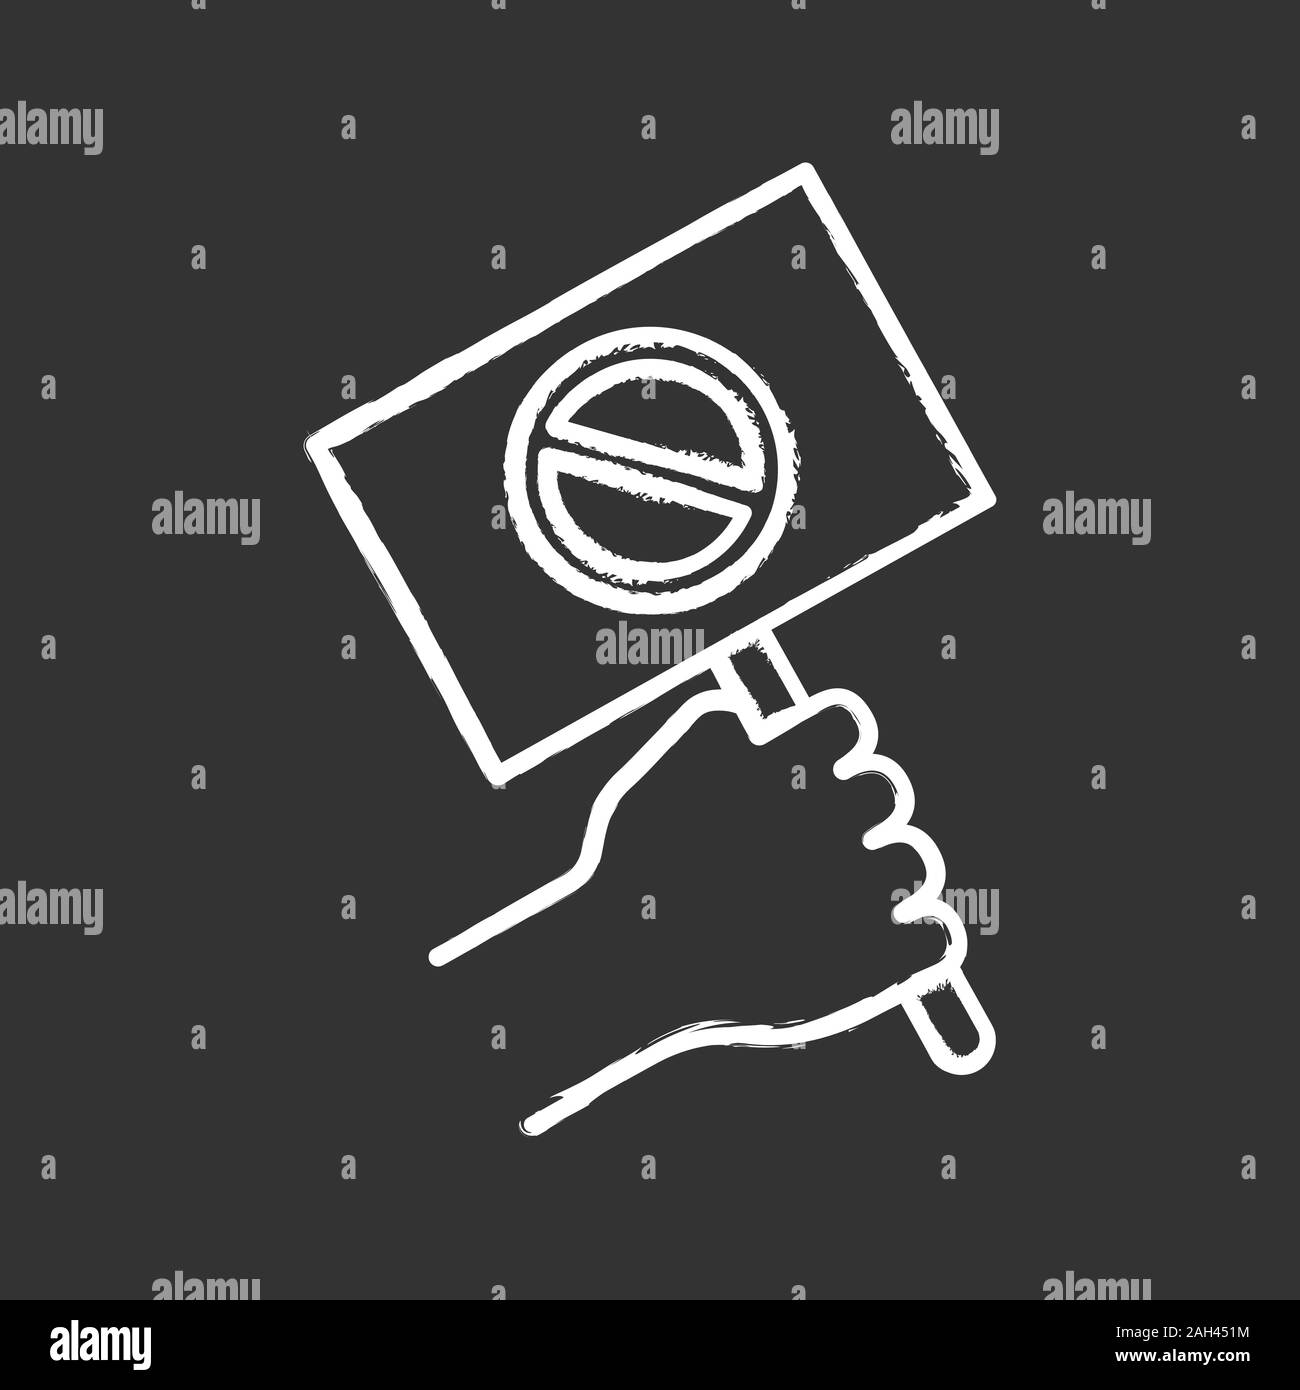 Protest banner in hand chalk icon. Protester's or activist's hand. Demonstration, meeting. Protest placard. Social and political movement participant. Stock Vector